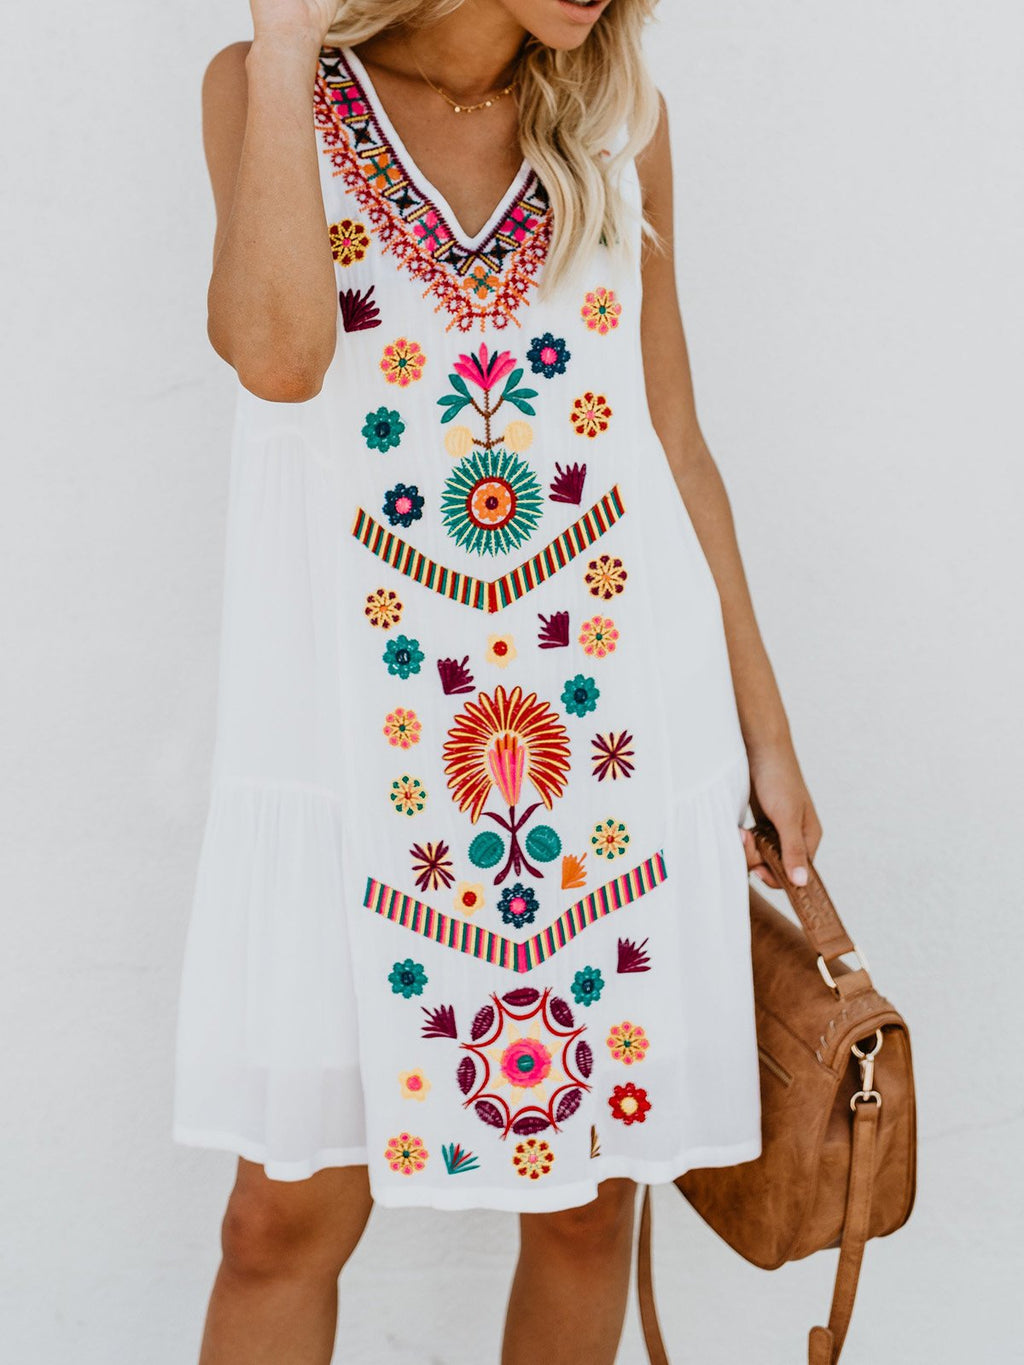 V neck Shift Daily Sleeveless Casual Printed Floral Dress